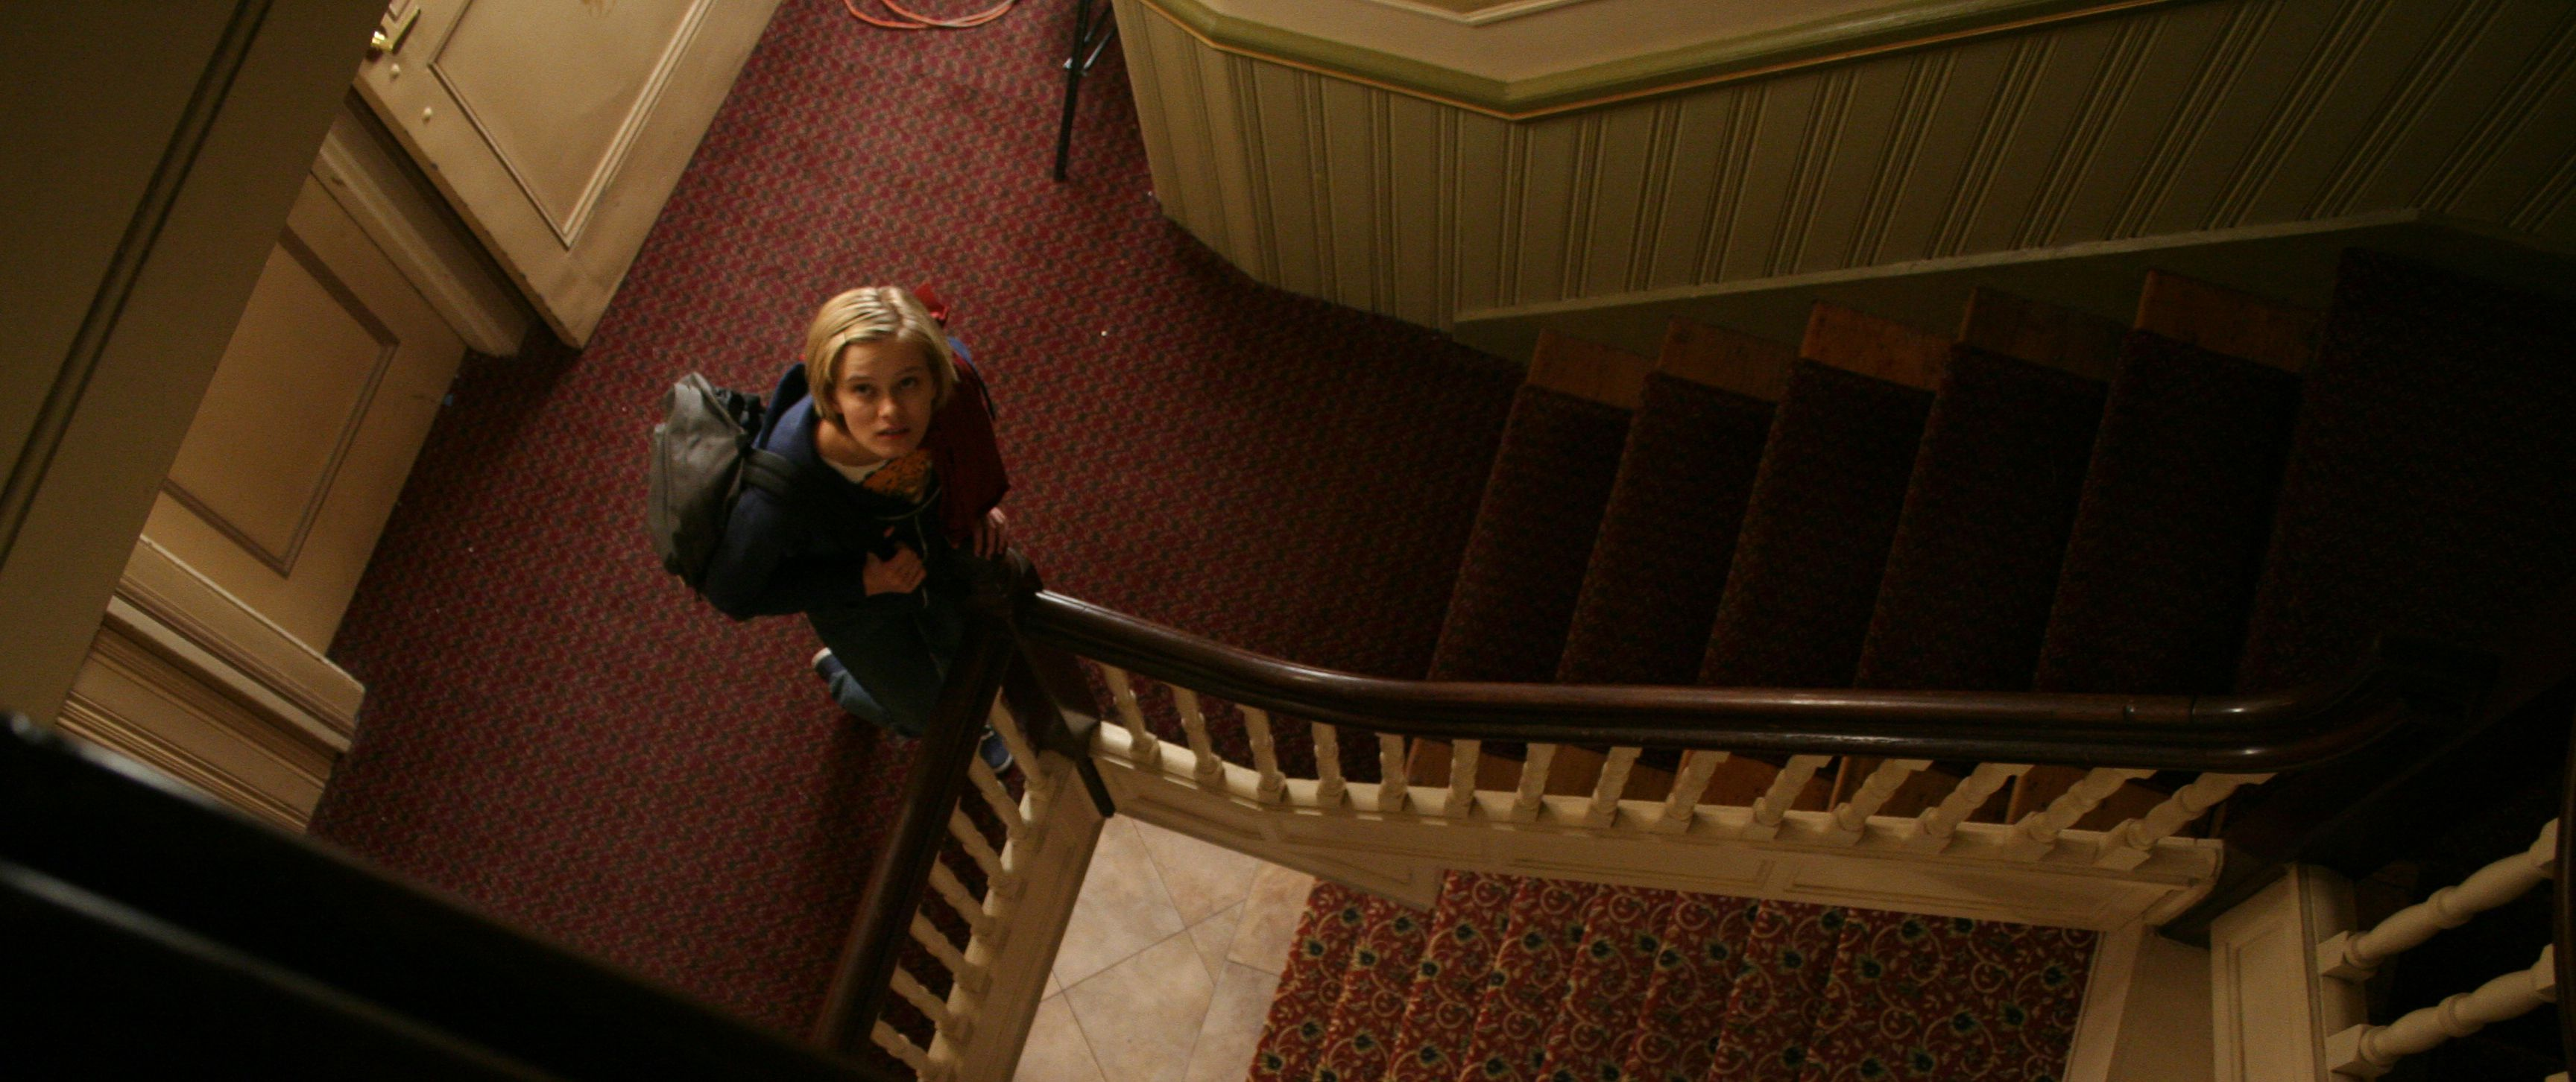 An image from The Innkeepers